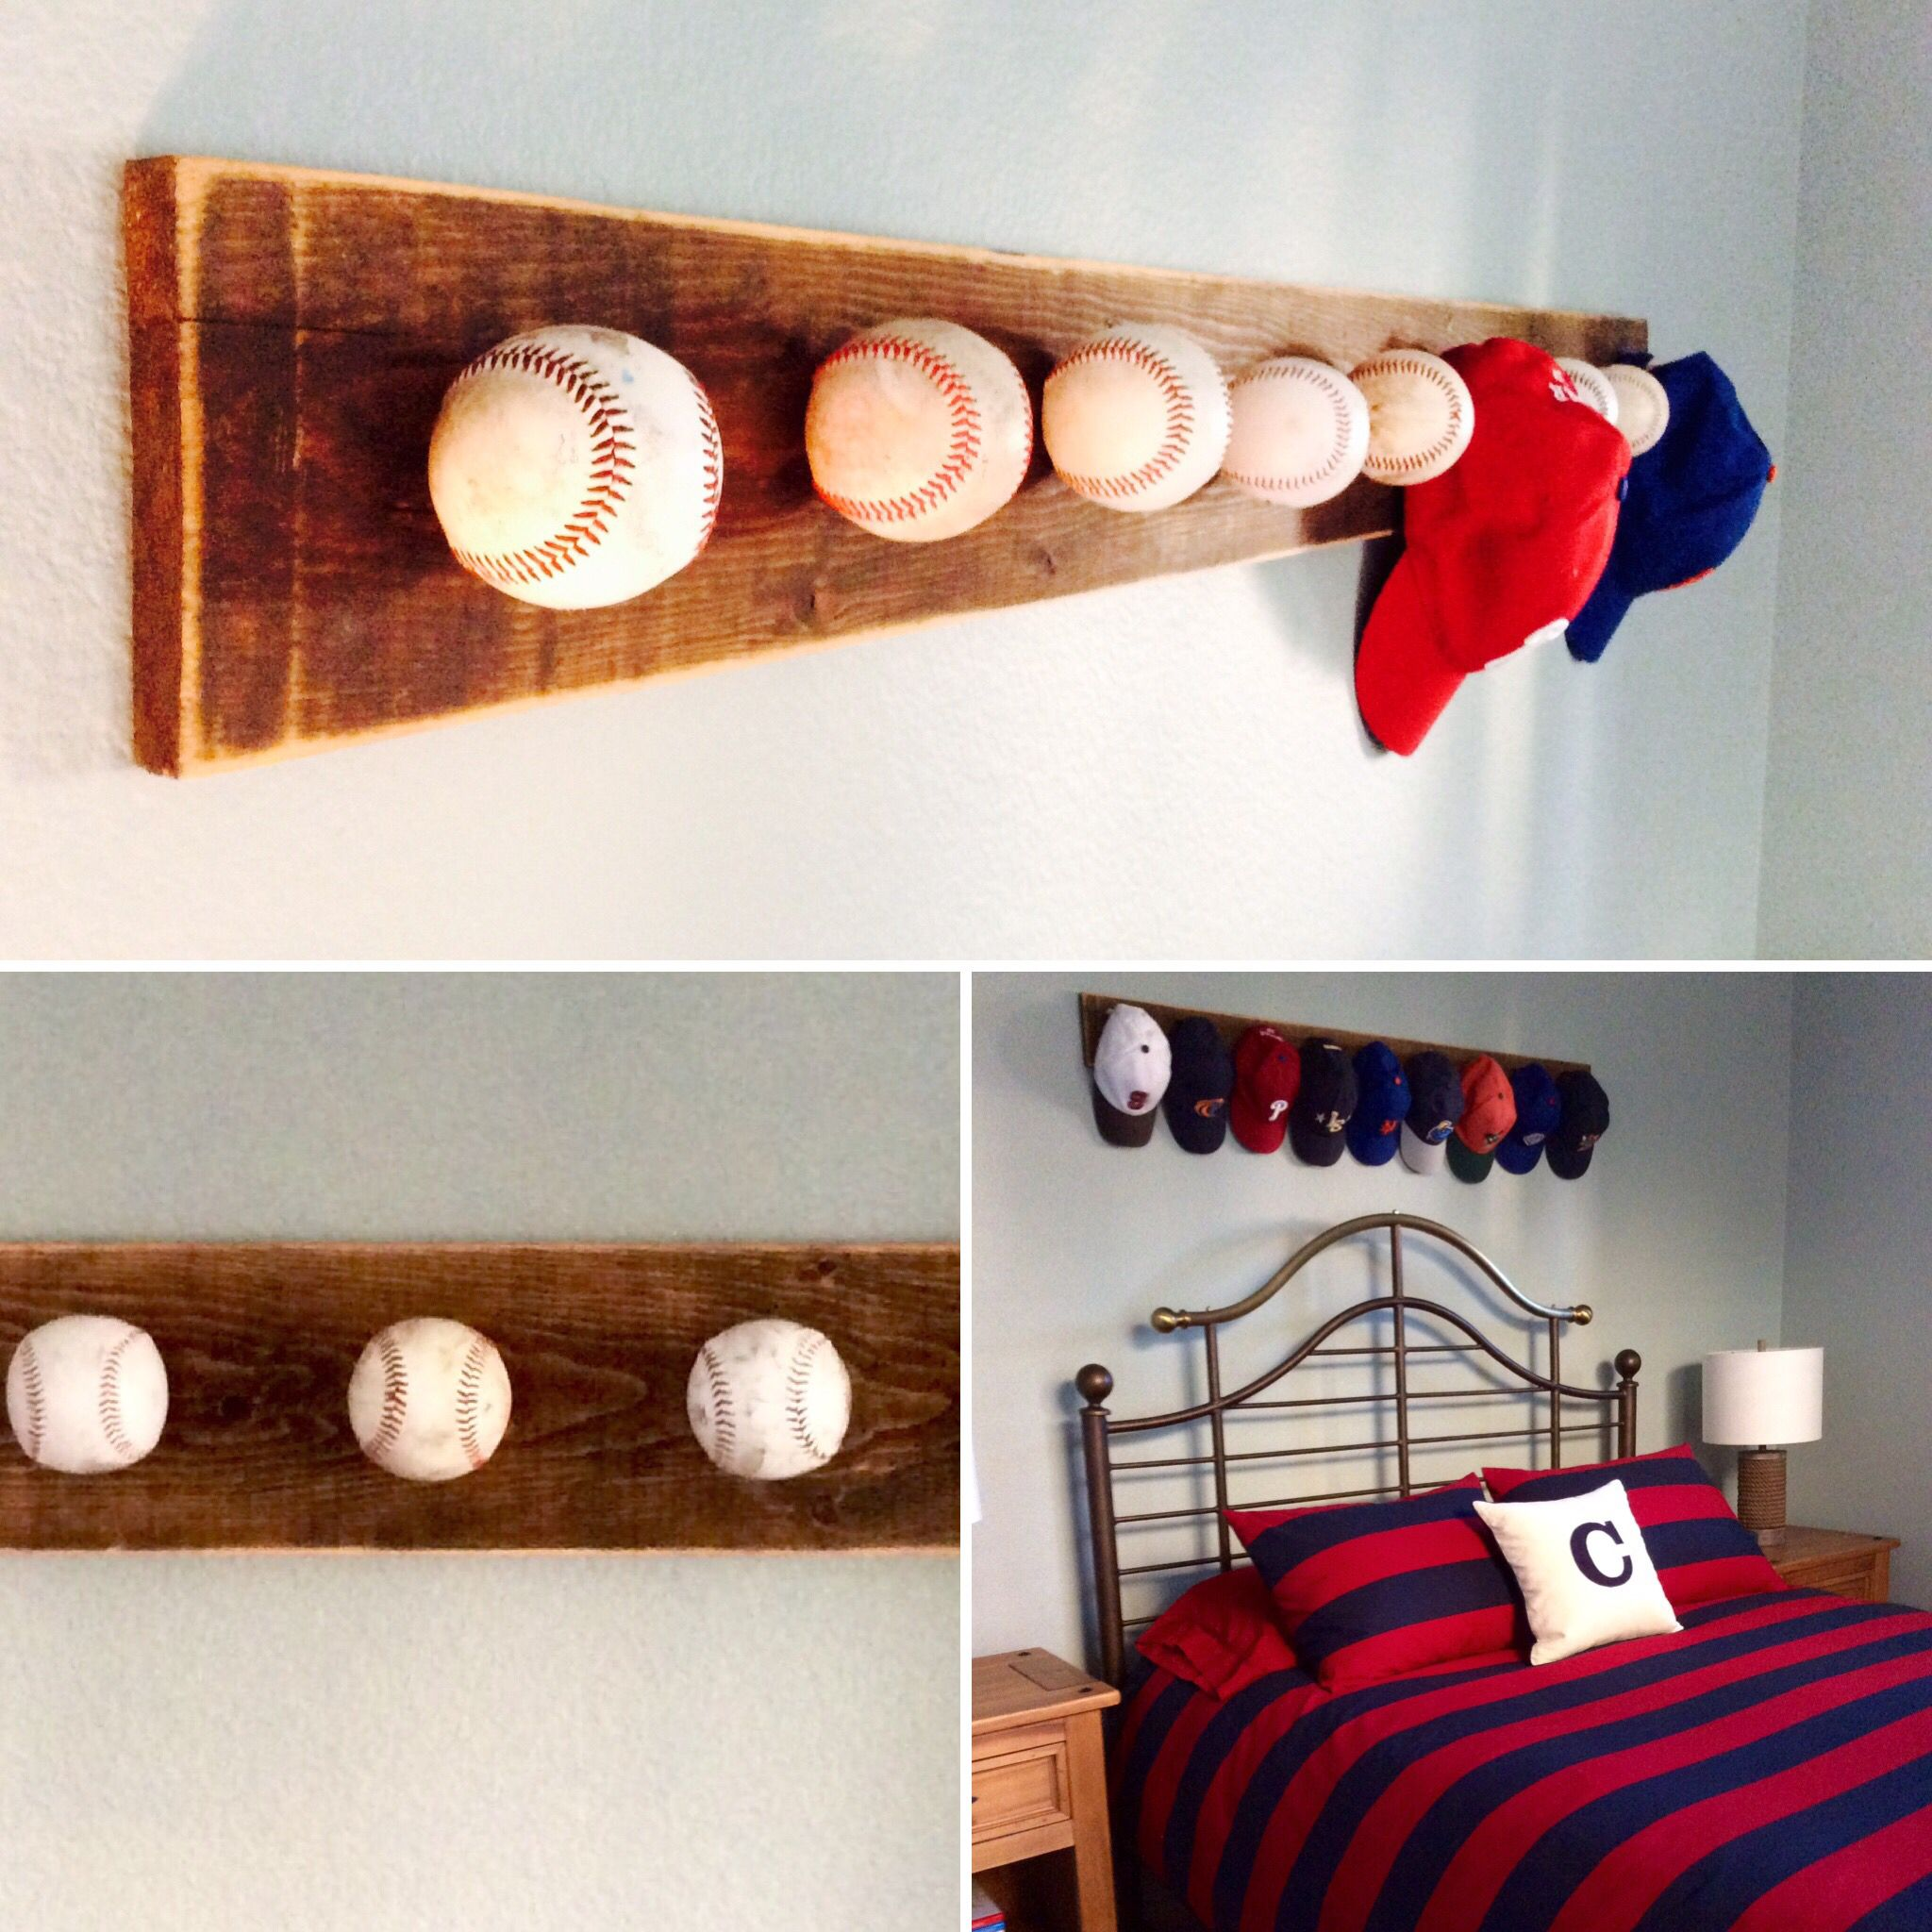 Hat Holders For Walls 13 43 Hat Rack Ideas Easy And Simple For Sweet Home Kids